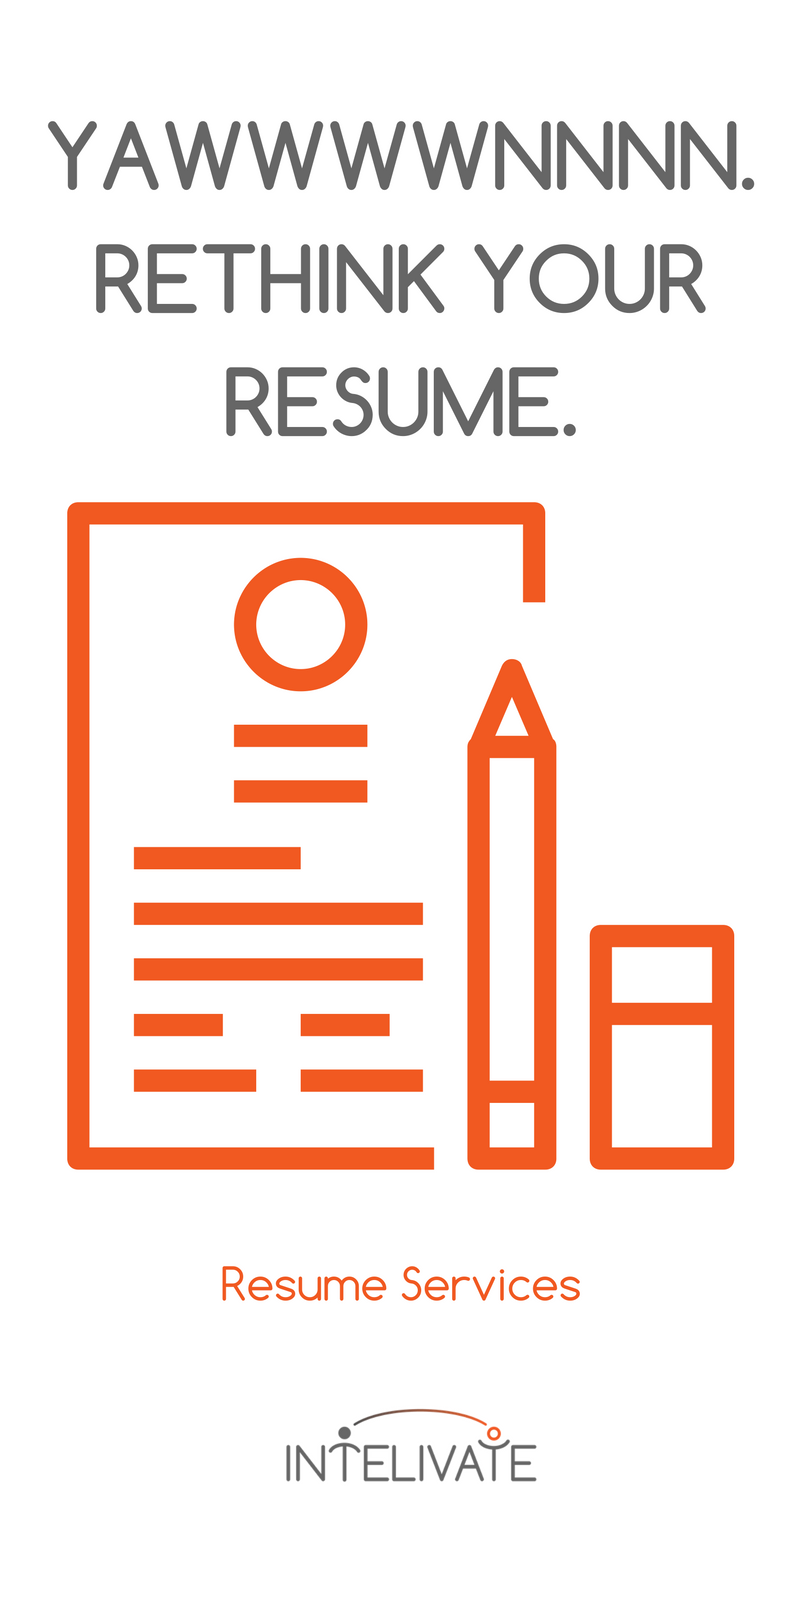 Resume services rethink your resume intelivate altavistaventures Images